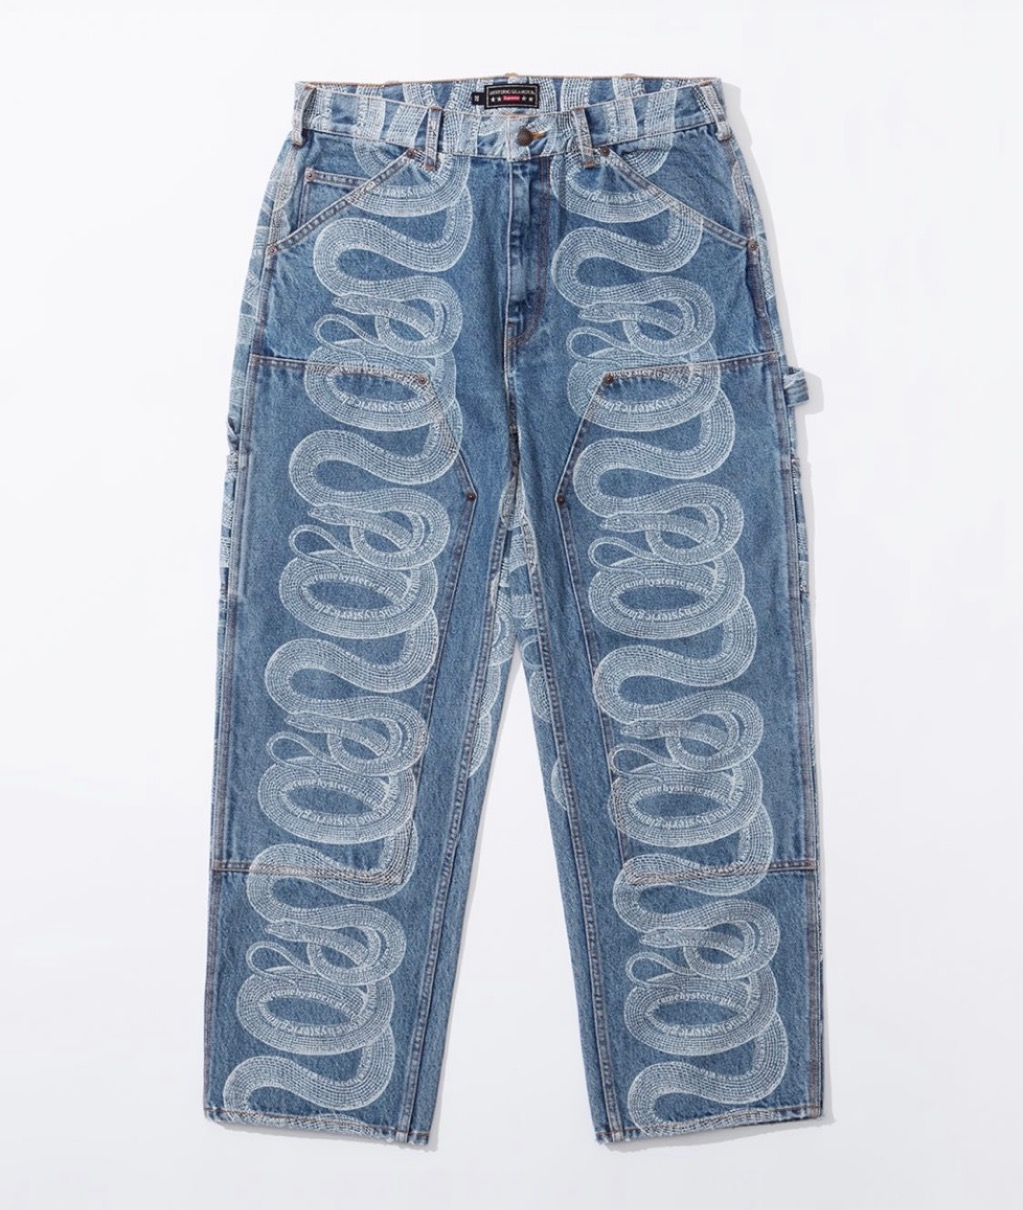 supreme 2021ss シュプリーム 2021春夏 week4 ヒステリックグラマー Supreme®/HYSTERIC GLAMOUR Snake Double Knee Denim Painter